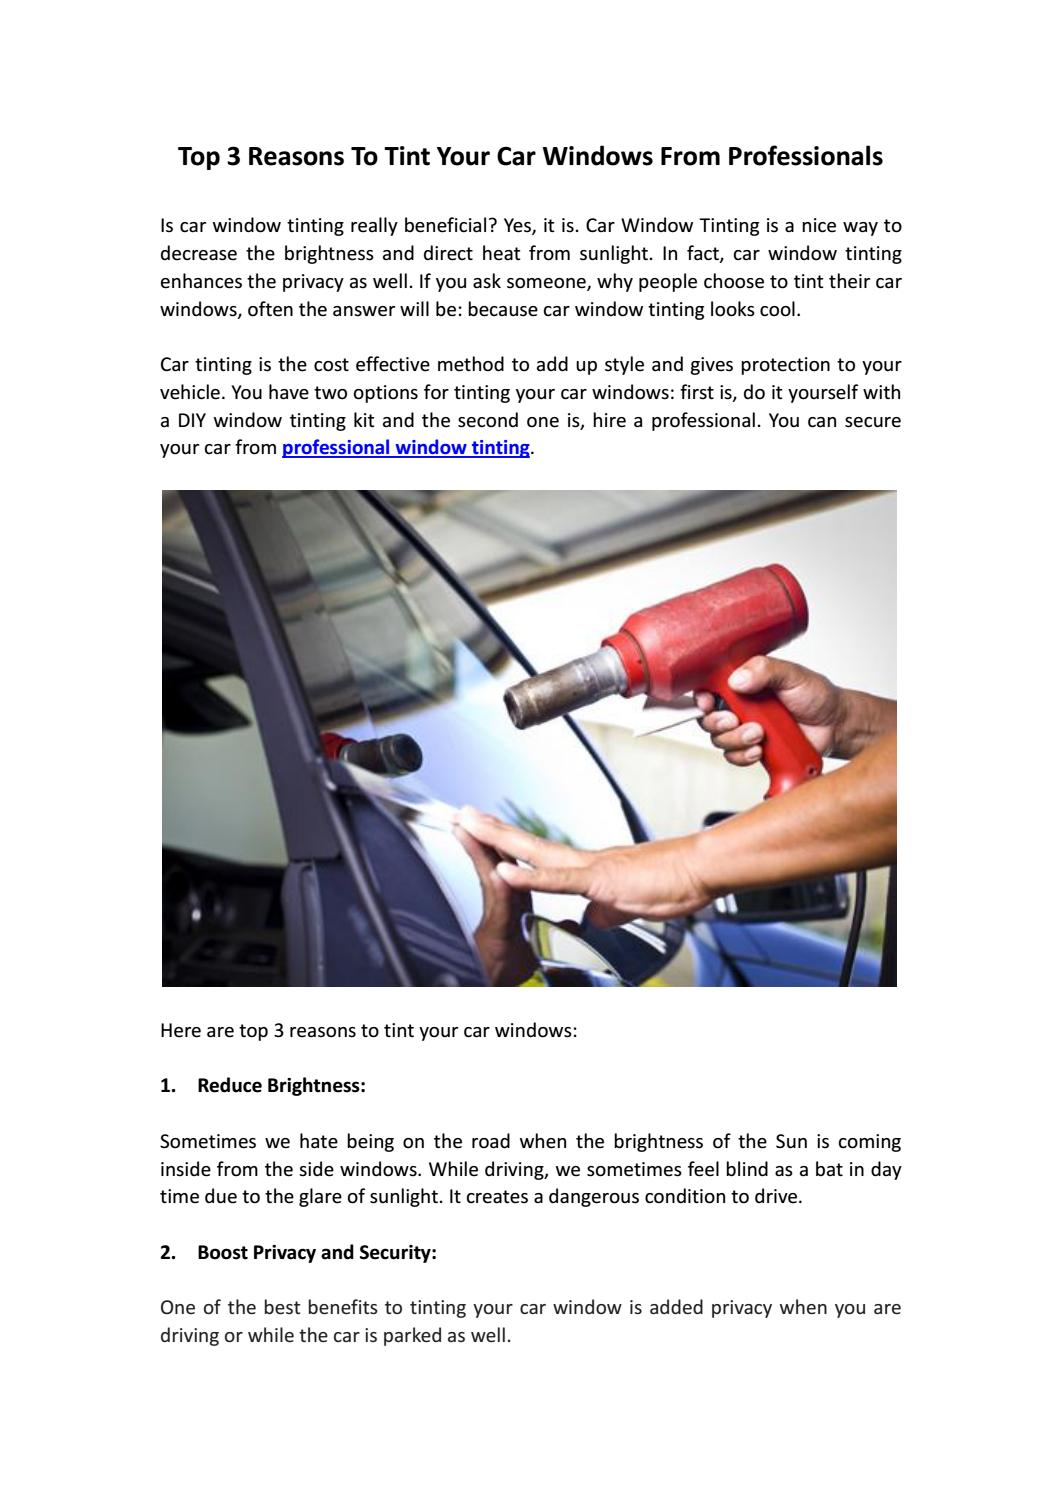 Top 3 reasons to tint your car windows from professionals by tint top 3 reasons to tint your car windows from professionals by tint pros online issuu solutioingenieria Gallery